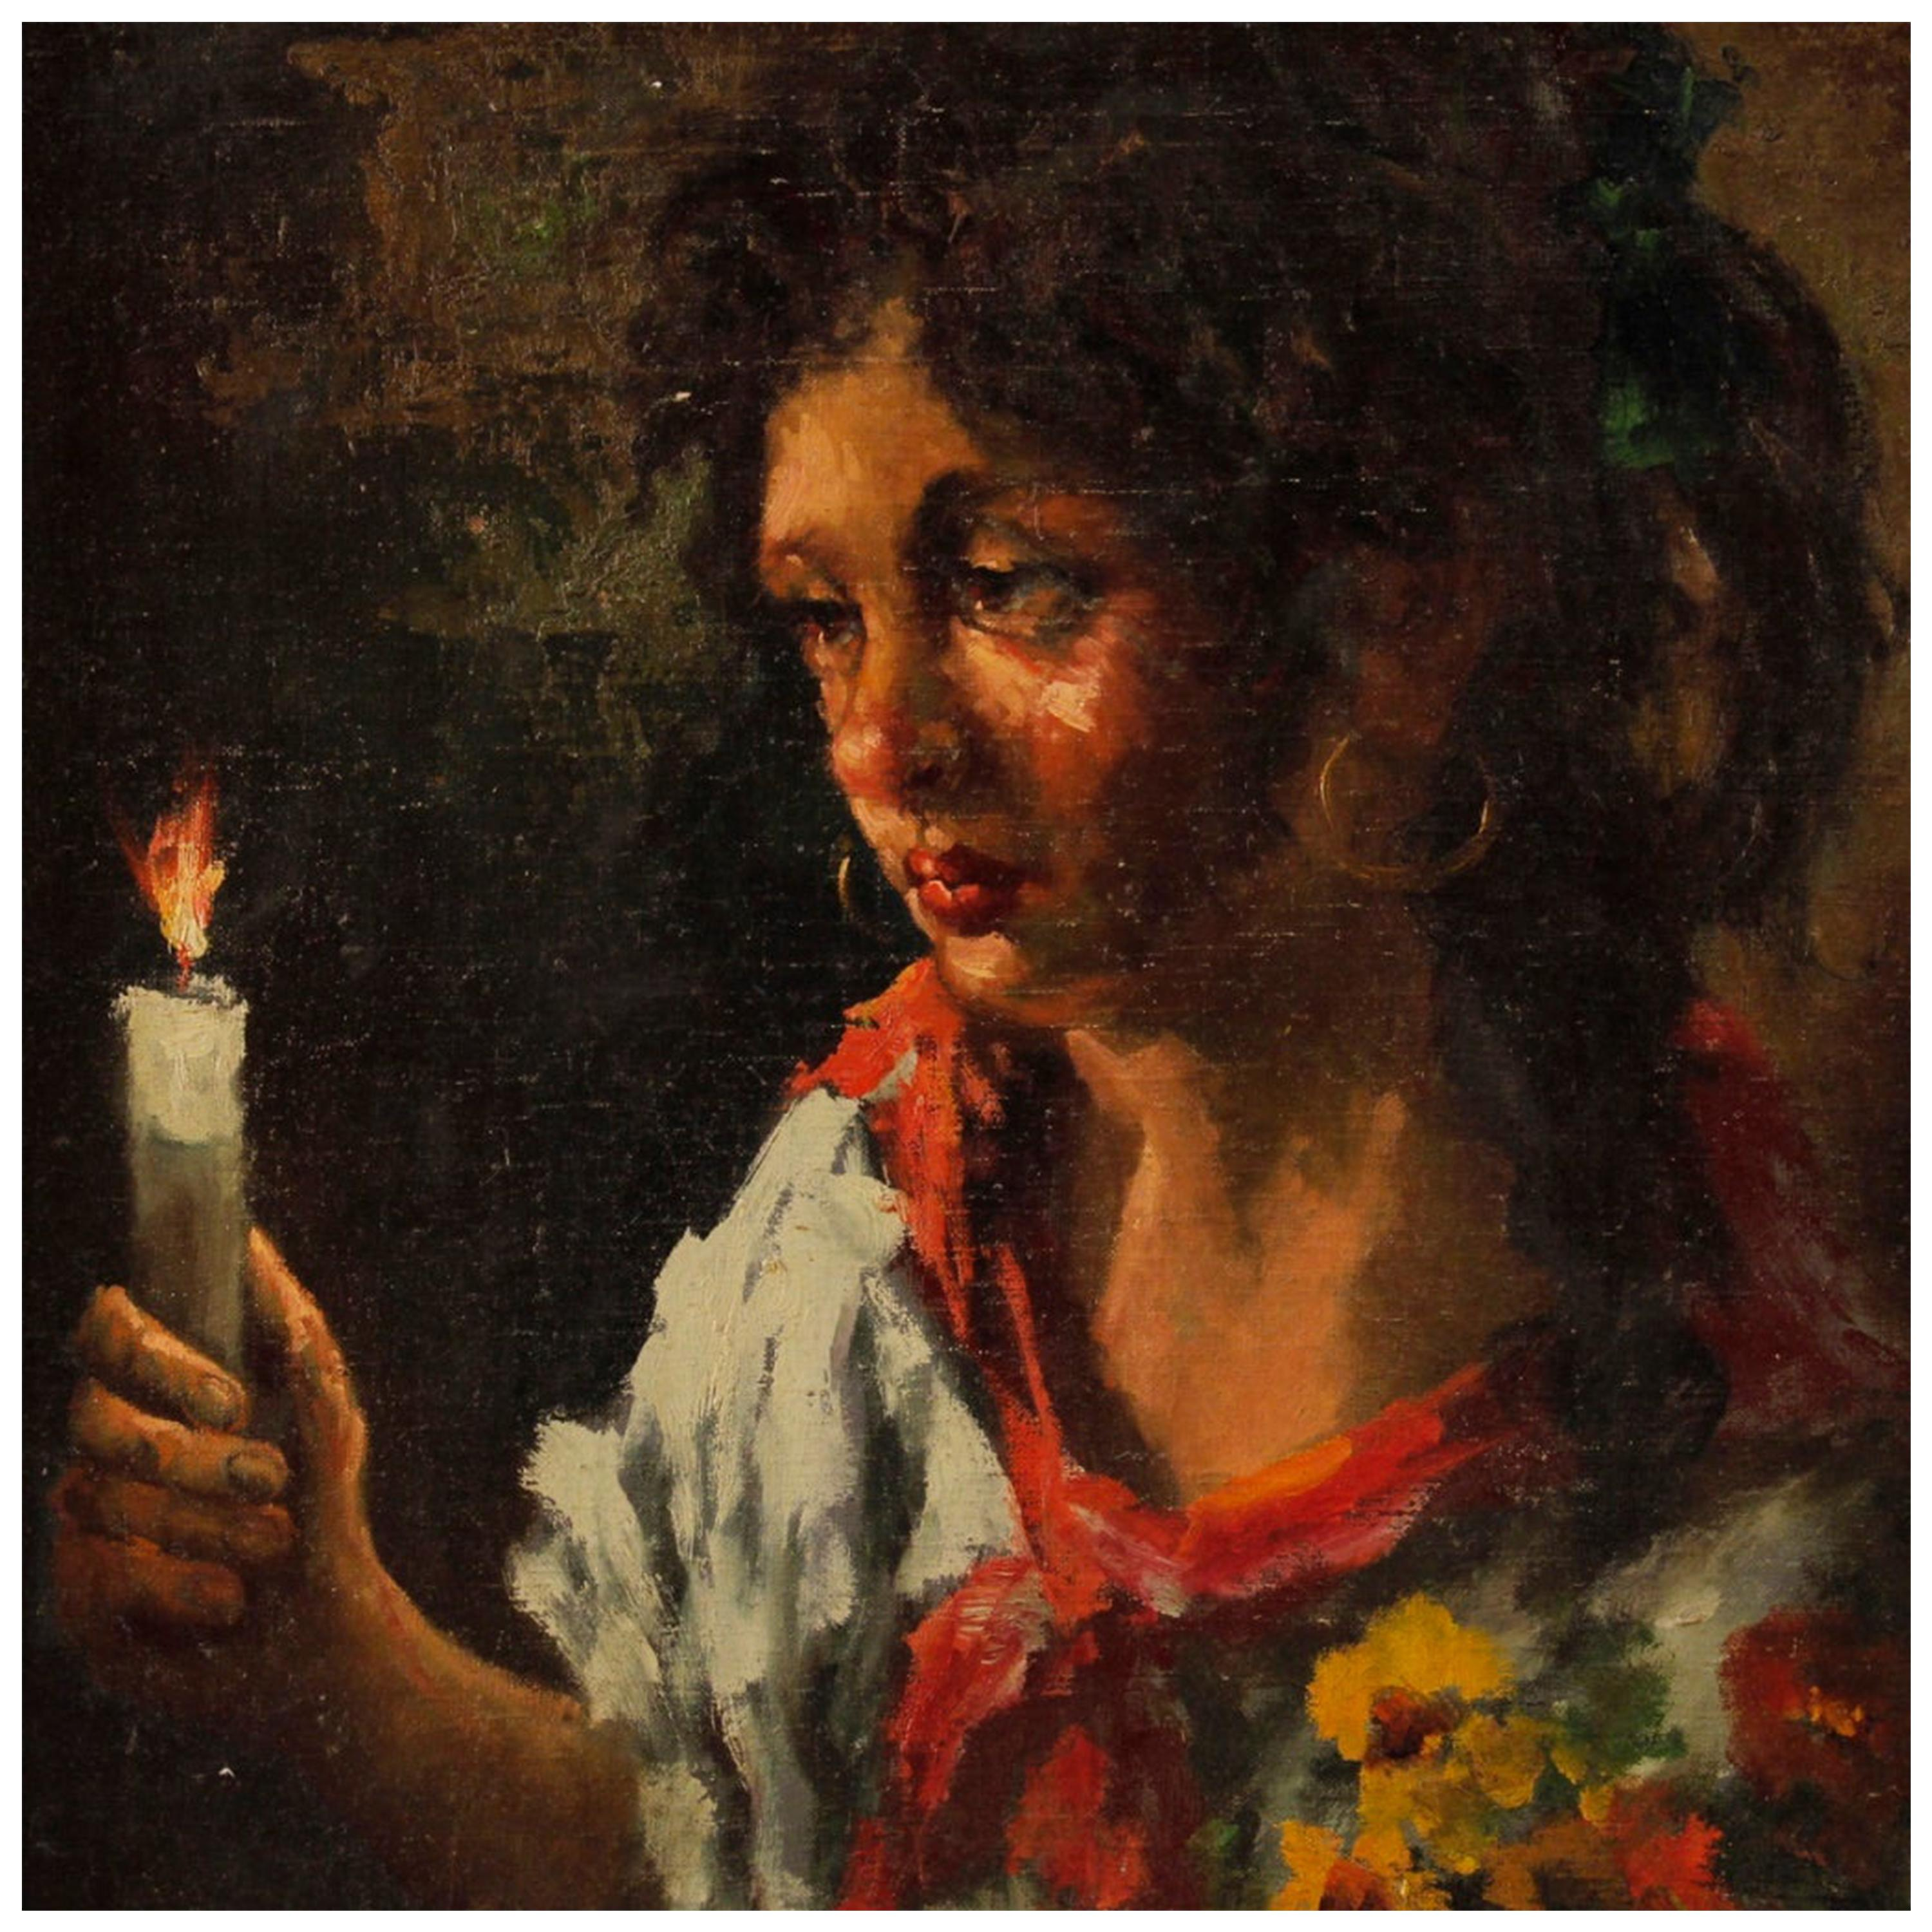 Italian Painting Signed and Dated Portrait of a Gypsy, 20th Century